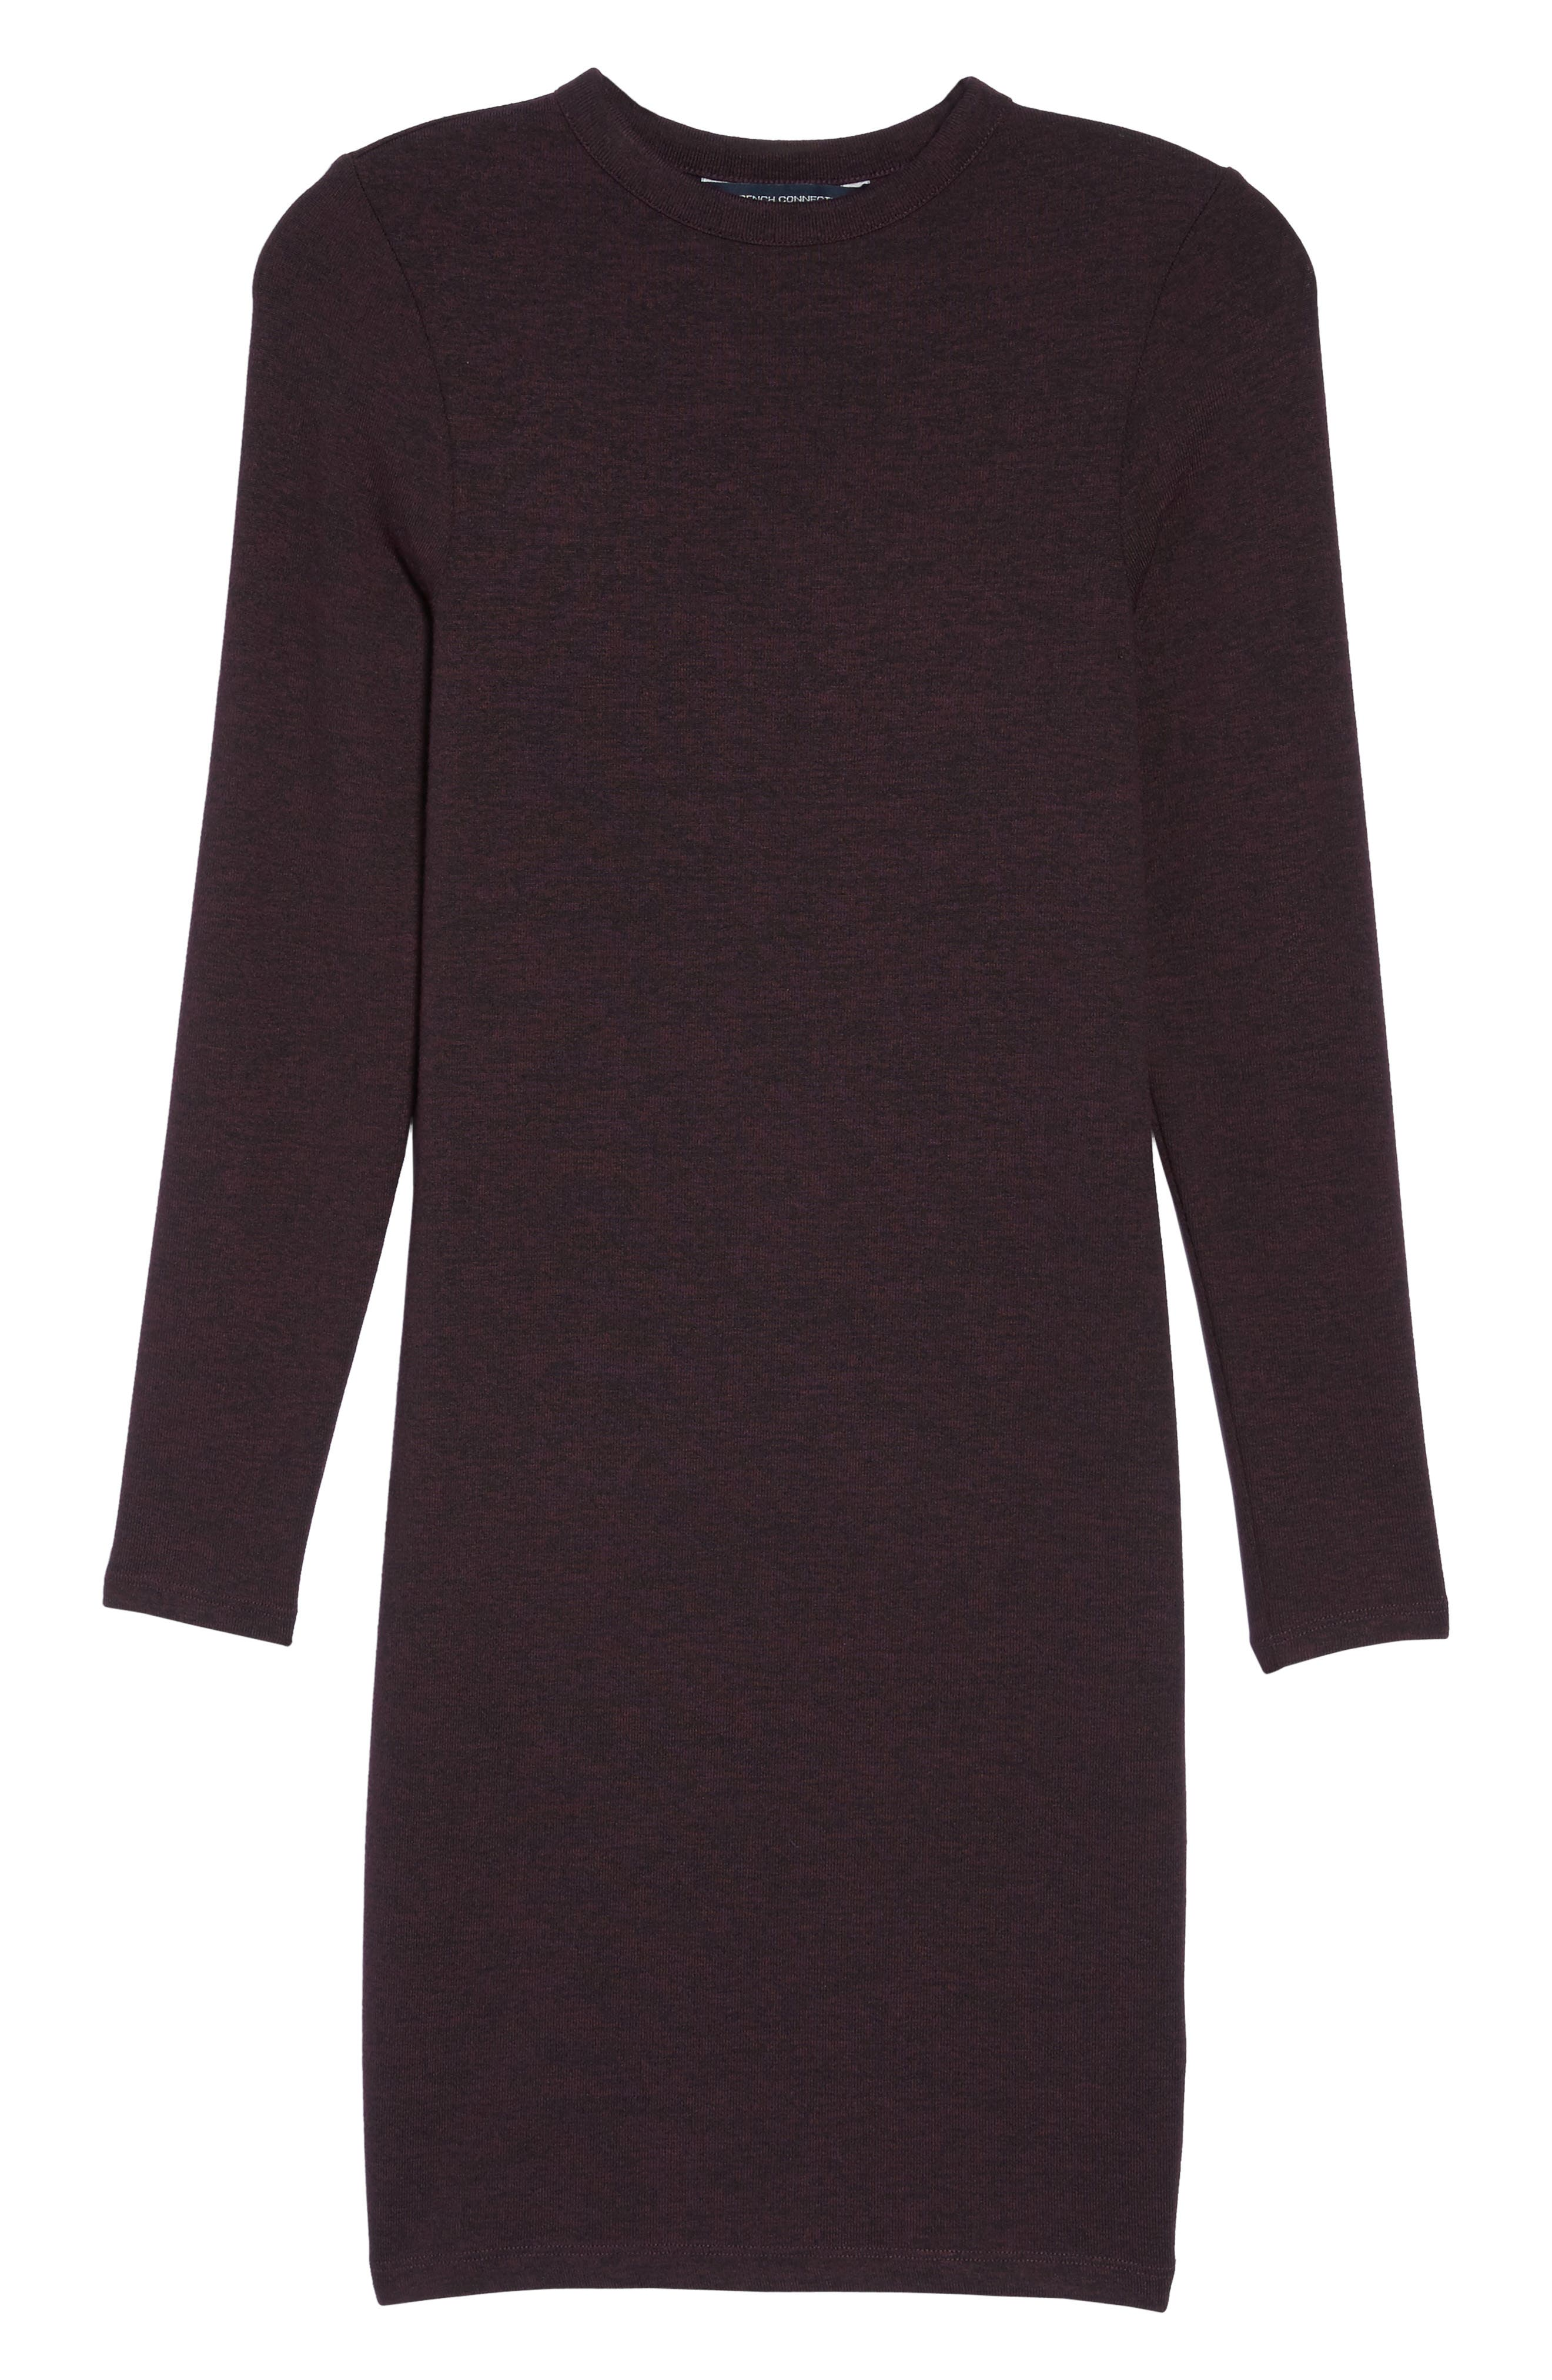 Sweeter Sweater Dress,                             Alternate thumbnail 12, color,